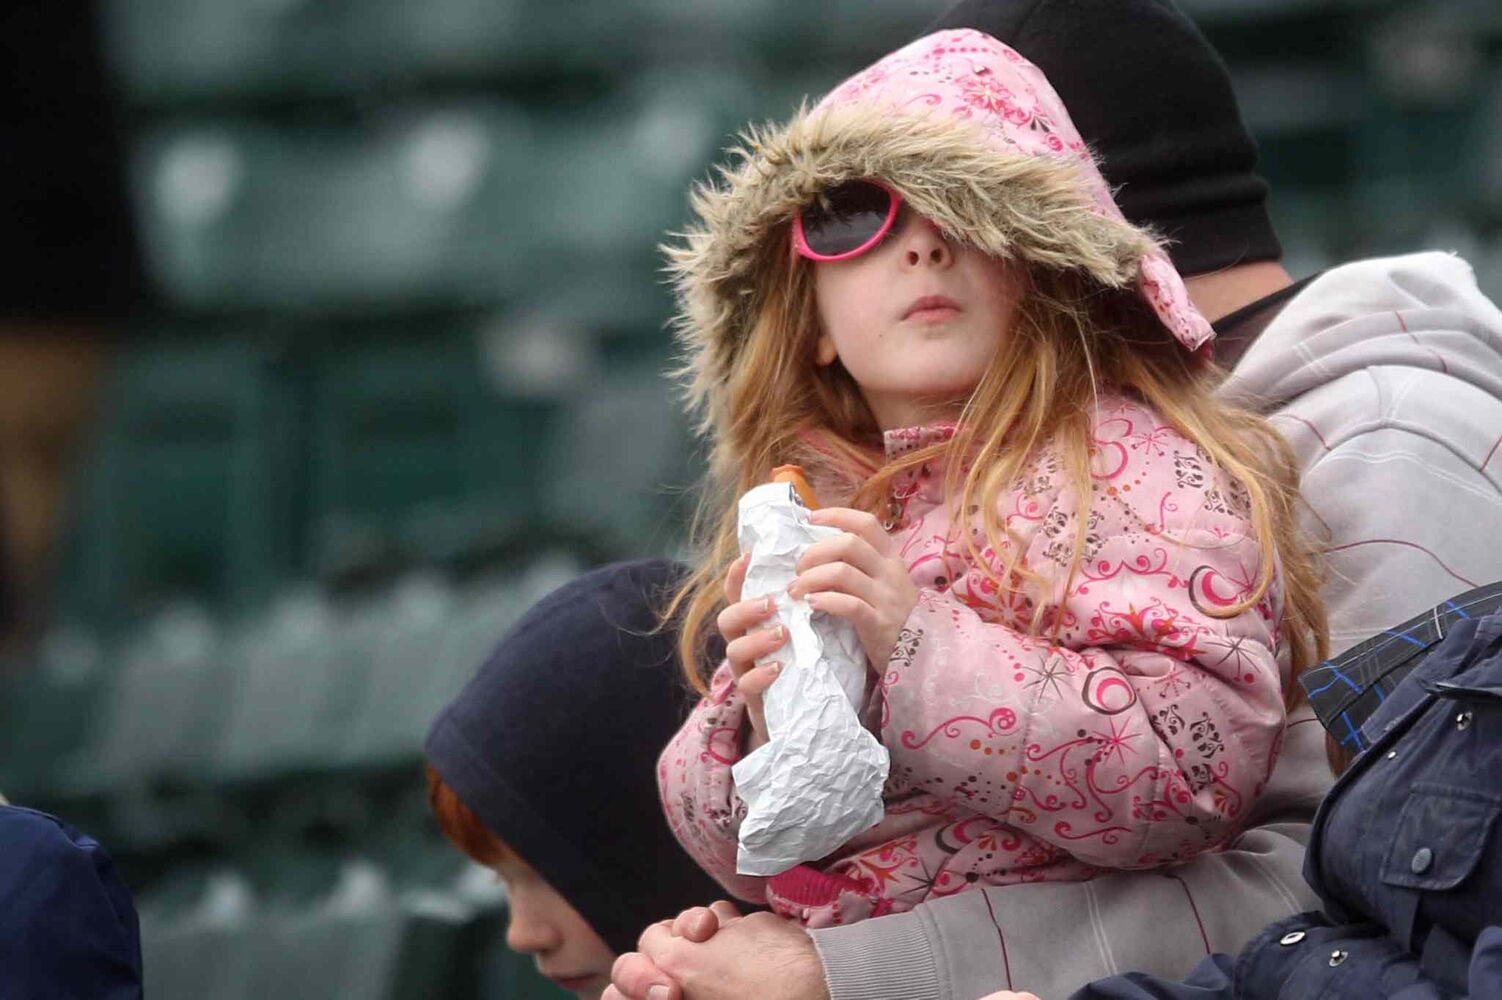 Saturday's weather turned out to be well below average seasonal temperatures, but that didn't stop a young girl in a fur-trimmed coat from enjoying a promised hotdog while watching the Goldeyes on the field.